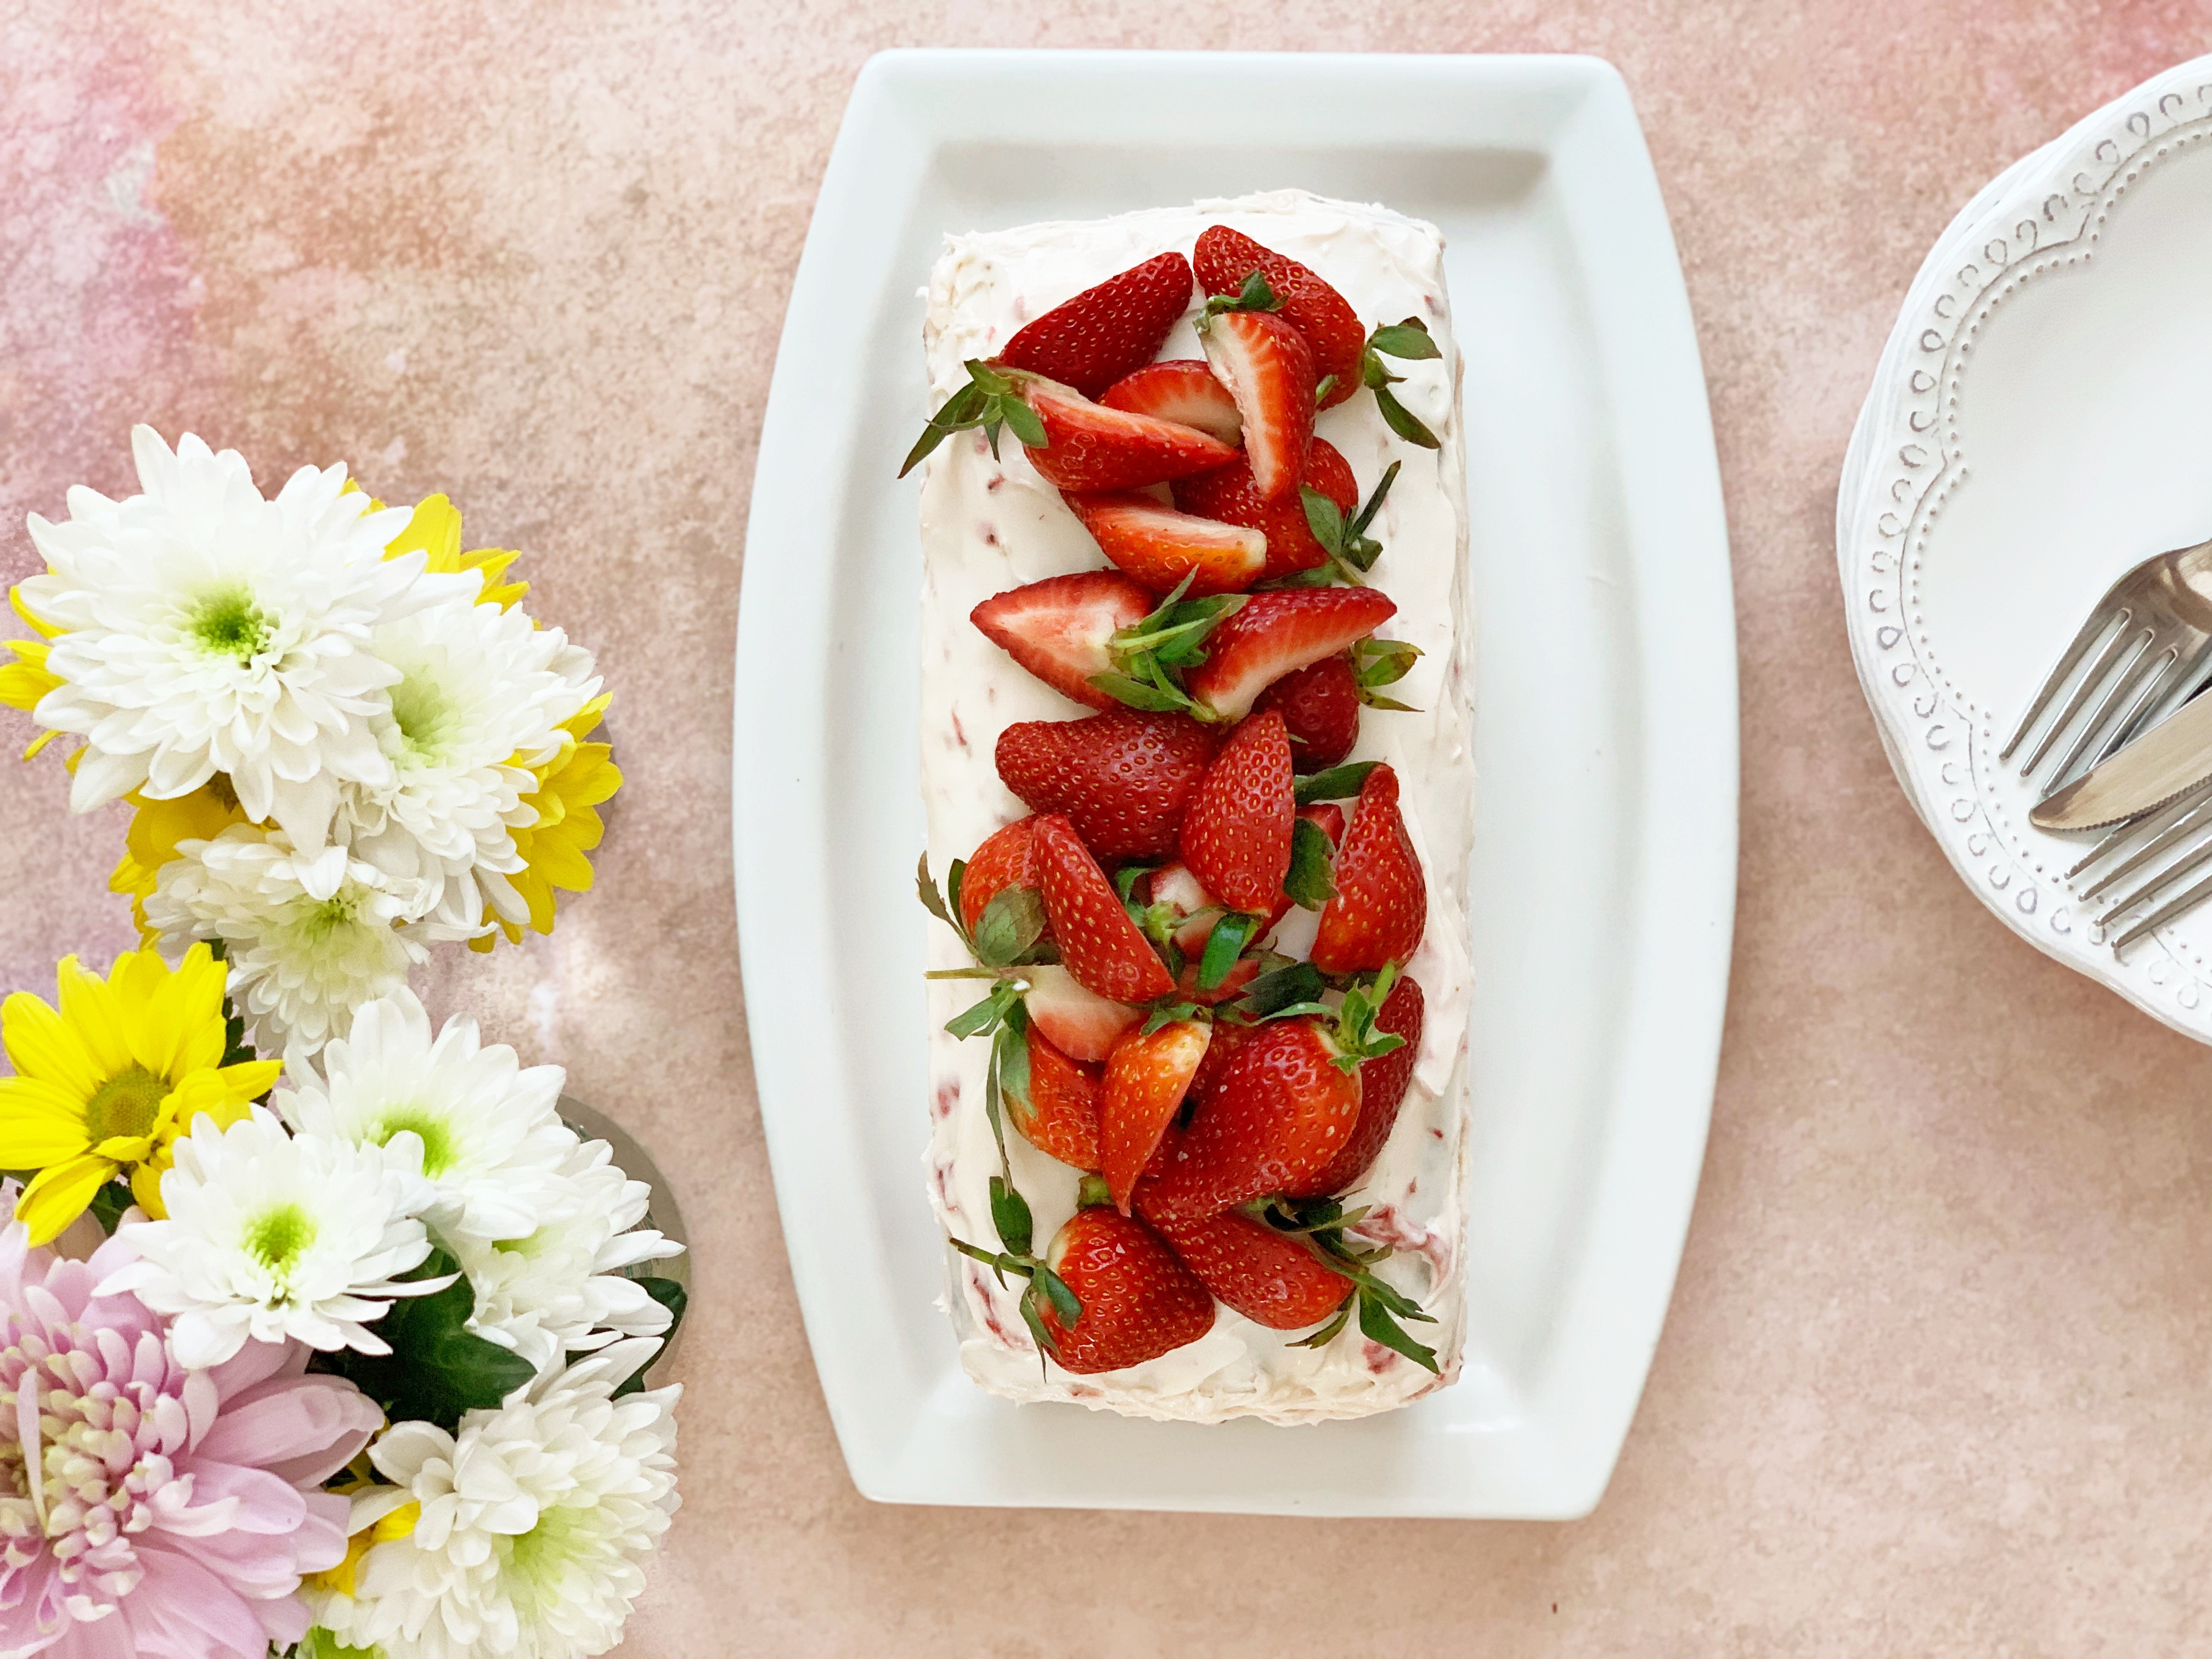 Strawberry bread with cream cheese frosting and fresh strawberries on top. To the left of it is a bunch of flowers in spring colours